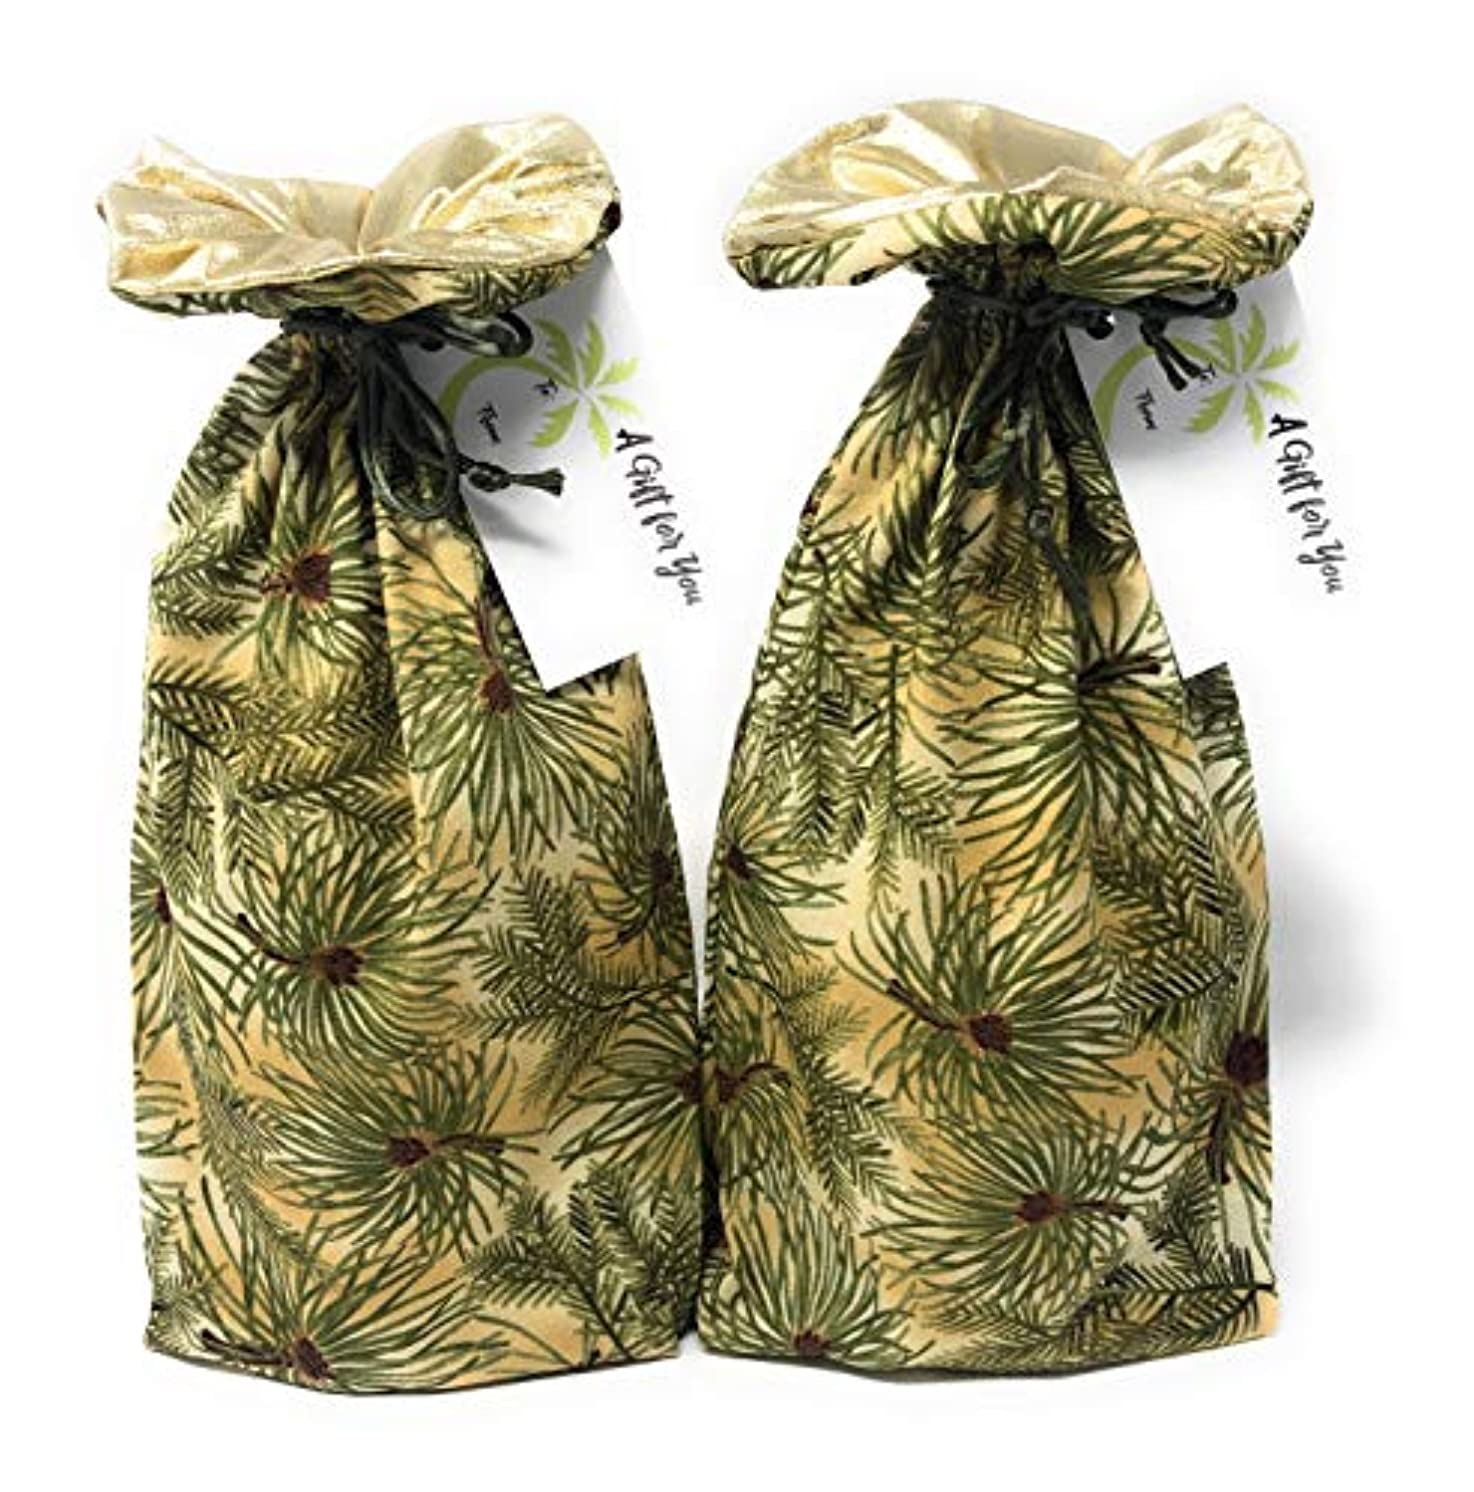 Holiday Pines Fabric -Reusable Drawstring Gift Bag   Eco-Friendly Alternative to Paper Giftwrap for Wine Bottles   Christmas Xmas   Cotton Cloth Fully-Lined Gold Lamé, 14